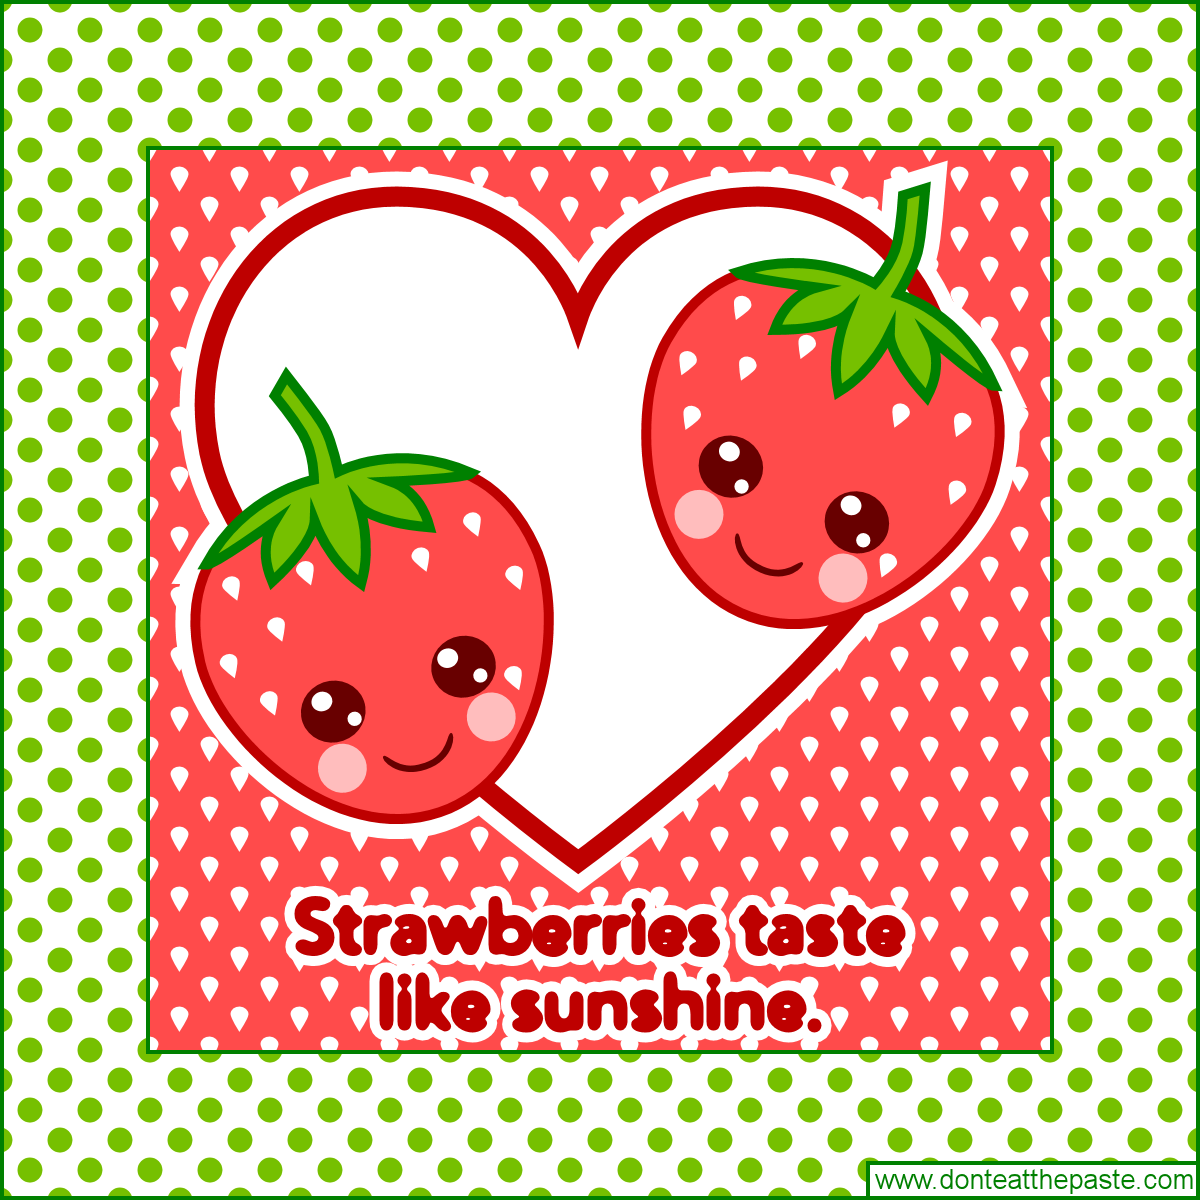 Strawberries taste like sunshine- sweet, sweet sunshine!